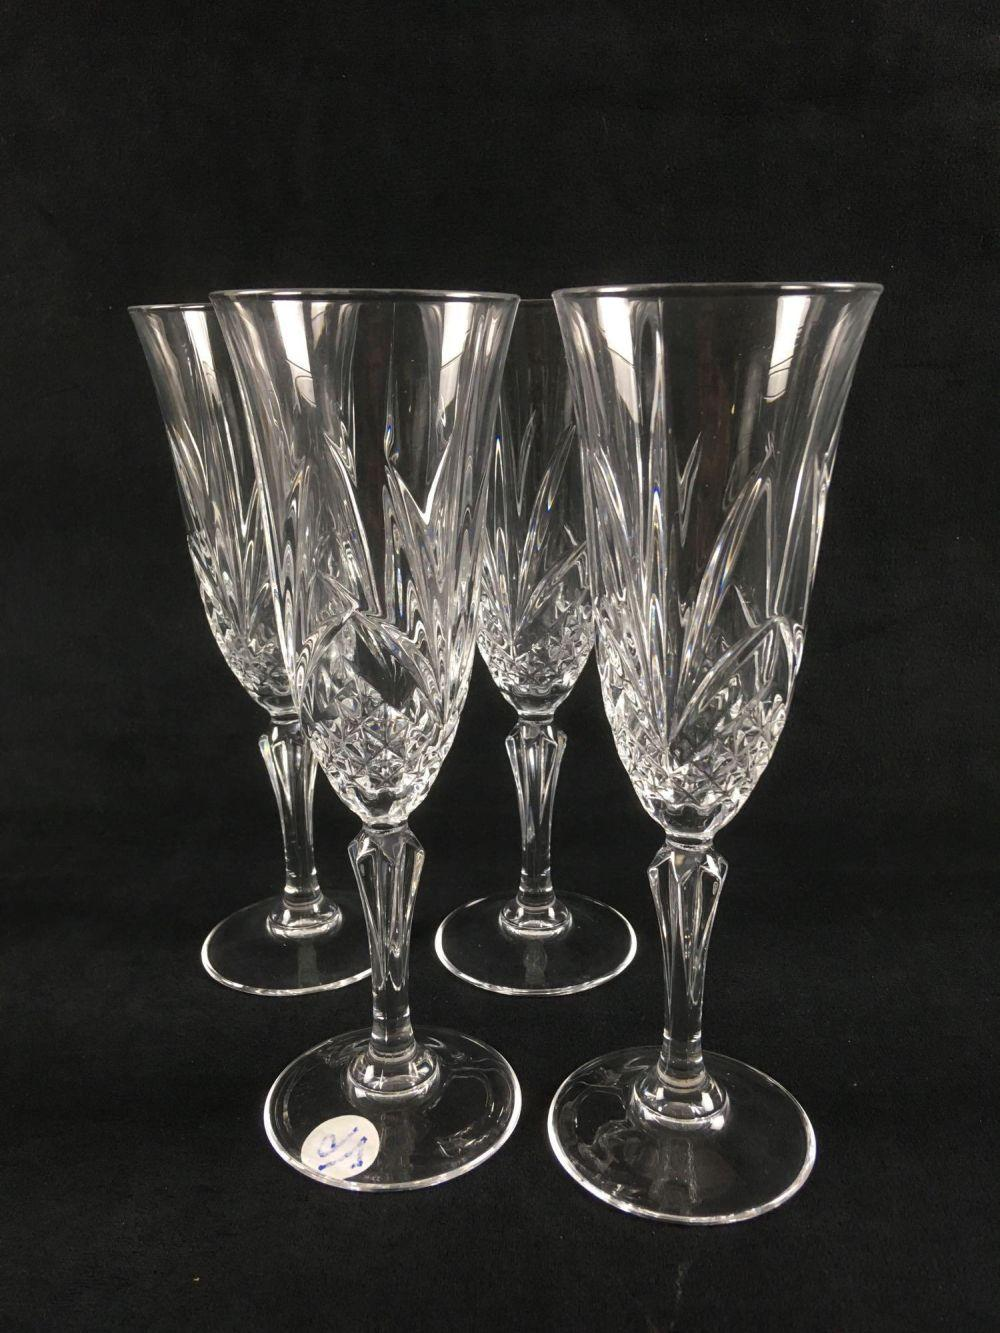 Lot 559: Set of 4 Clear Cut Crystal Champagne Flutes